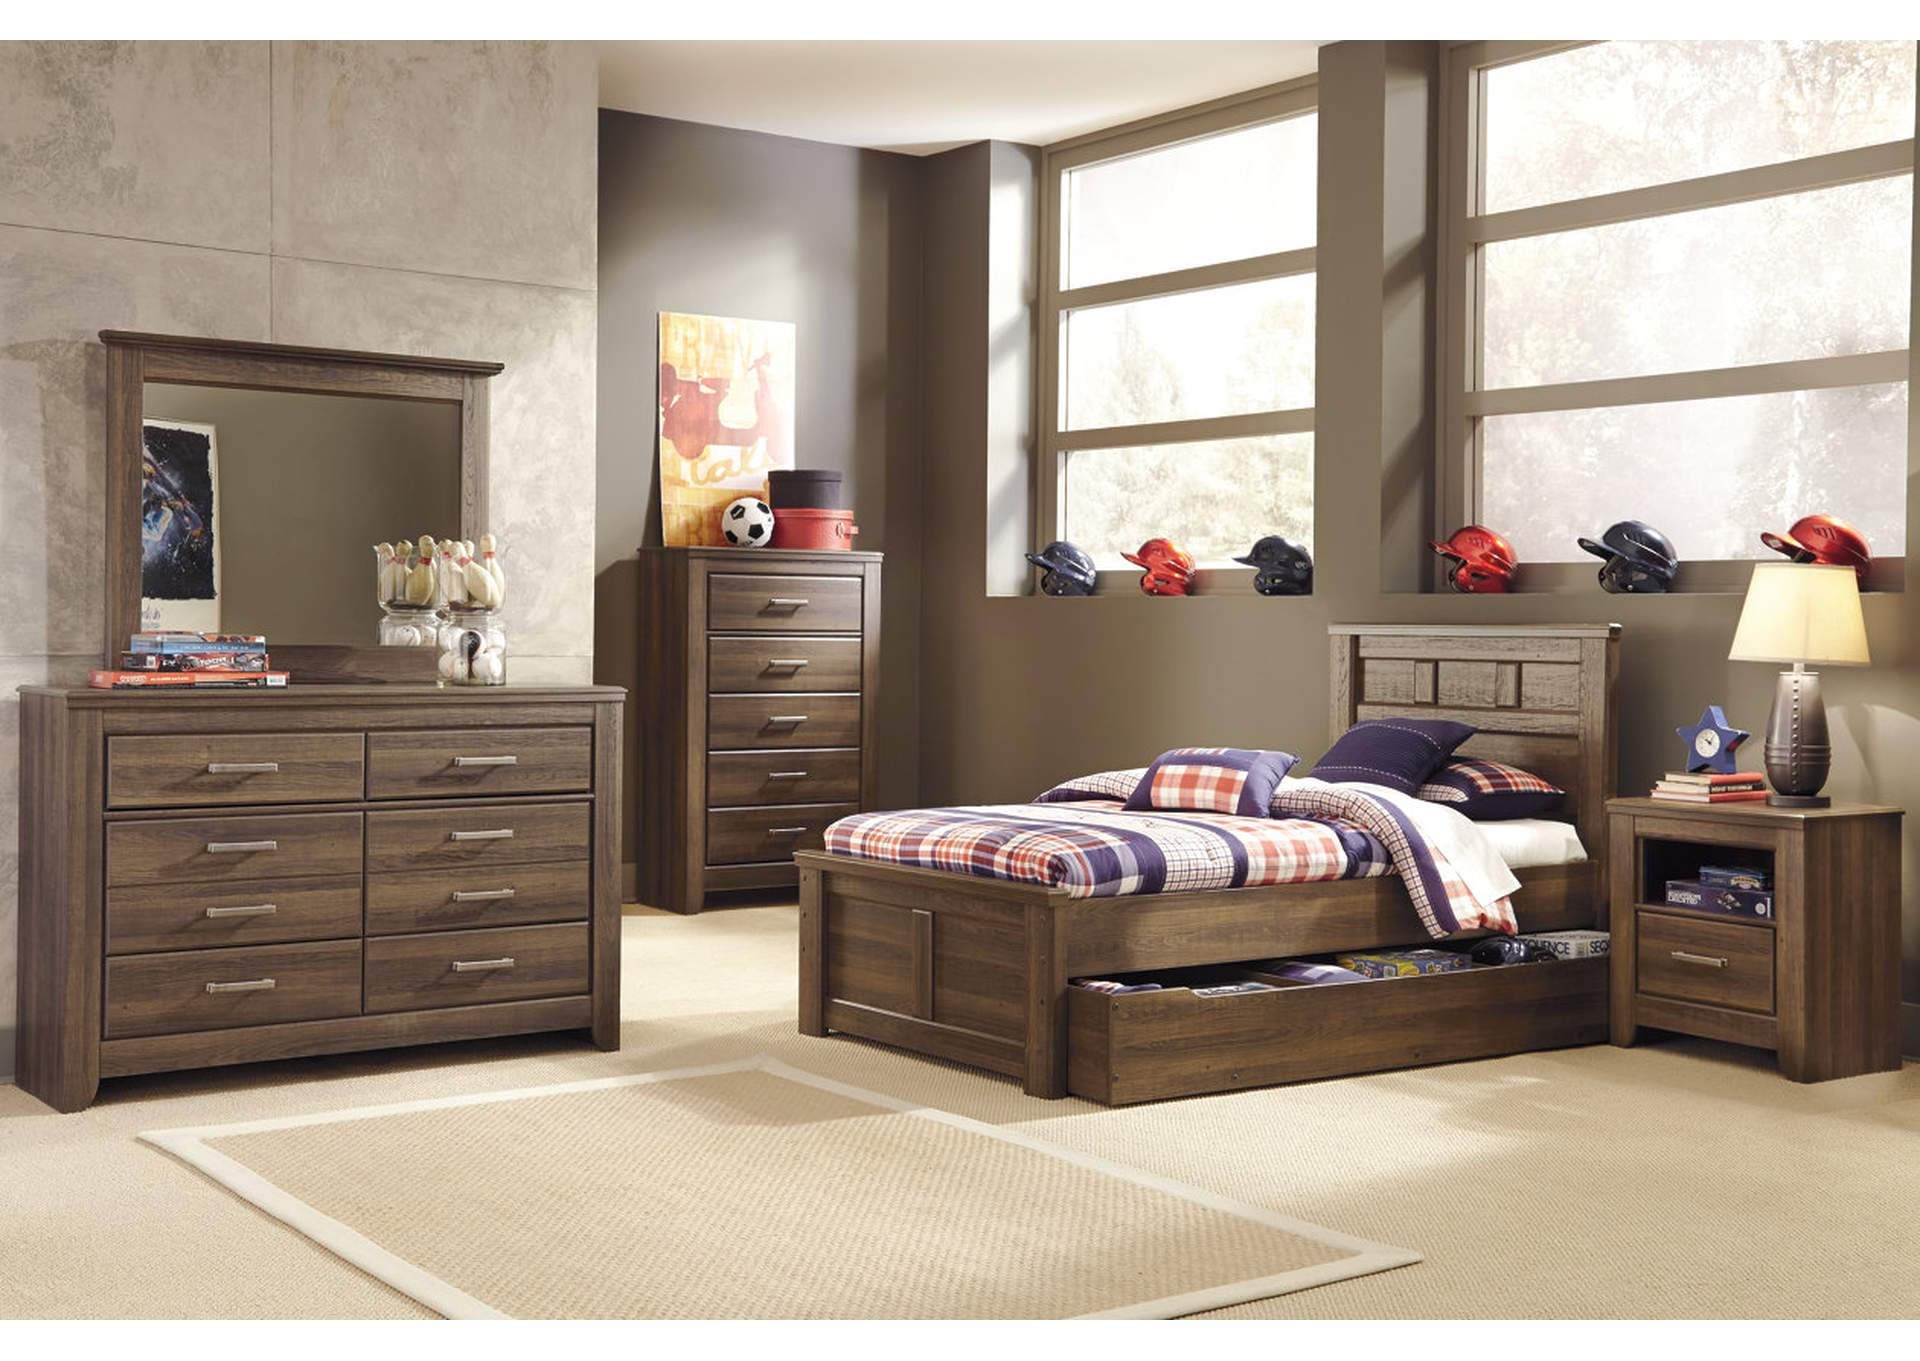 Juararo Twin Panel Storage Bed w/Dresser, Mirror, Chest & One Drawer Nightstand,Signature Design By Ashley